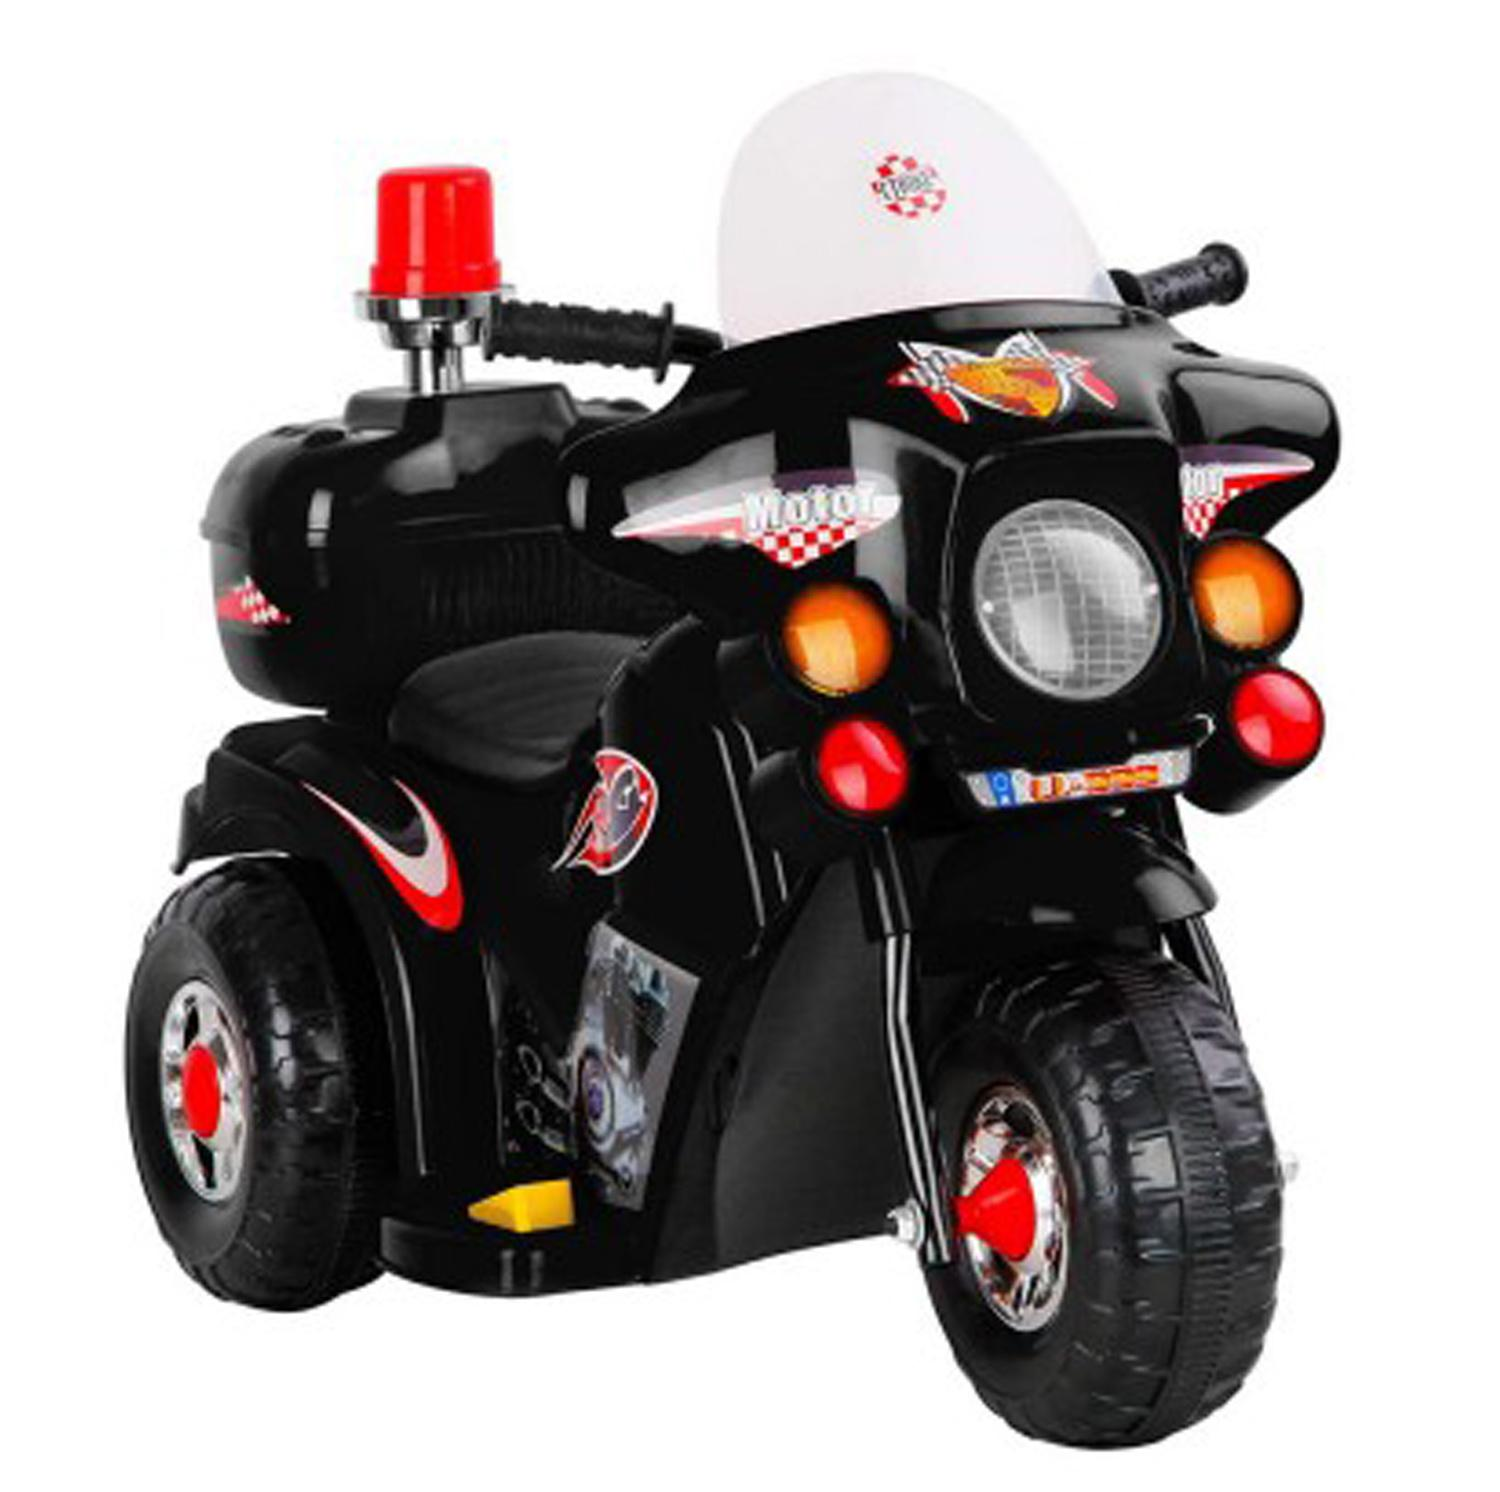 Rechargeable Motor Bike Kids Ride-On Toys Police Motorcycle By Hot-Wave.